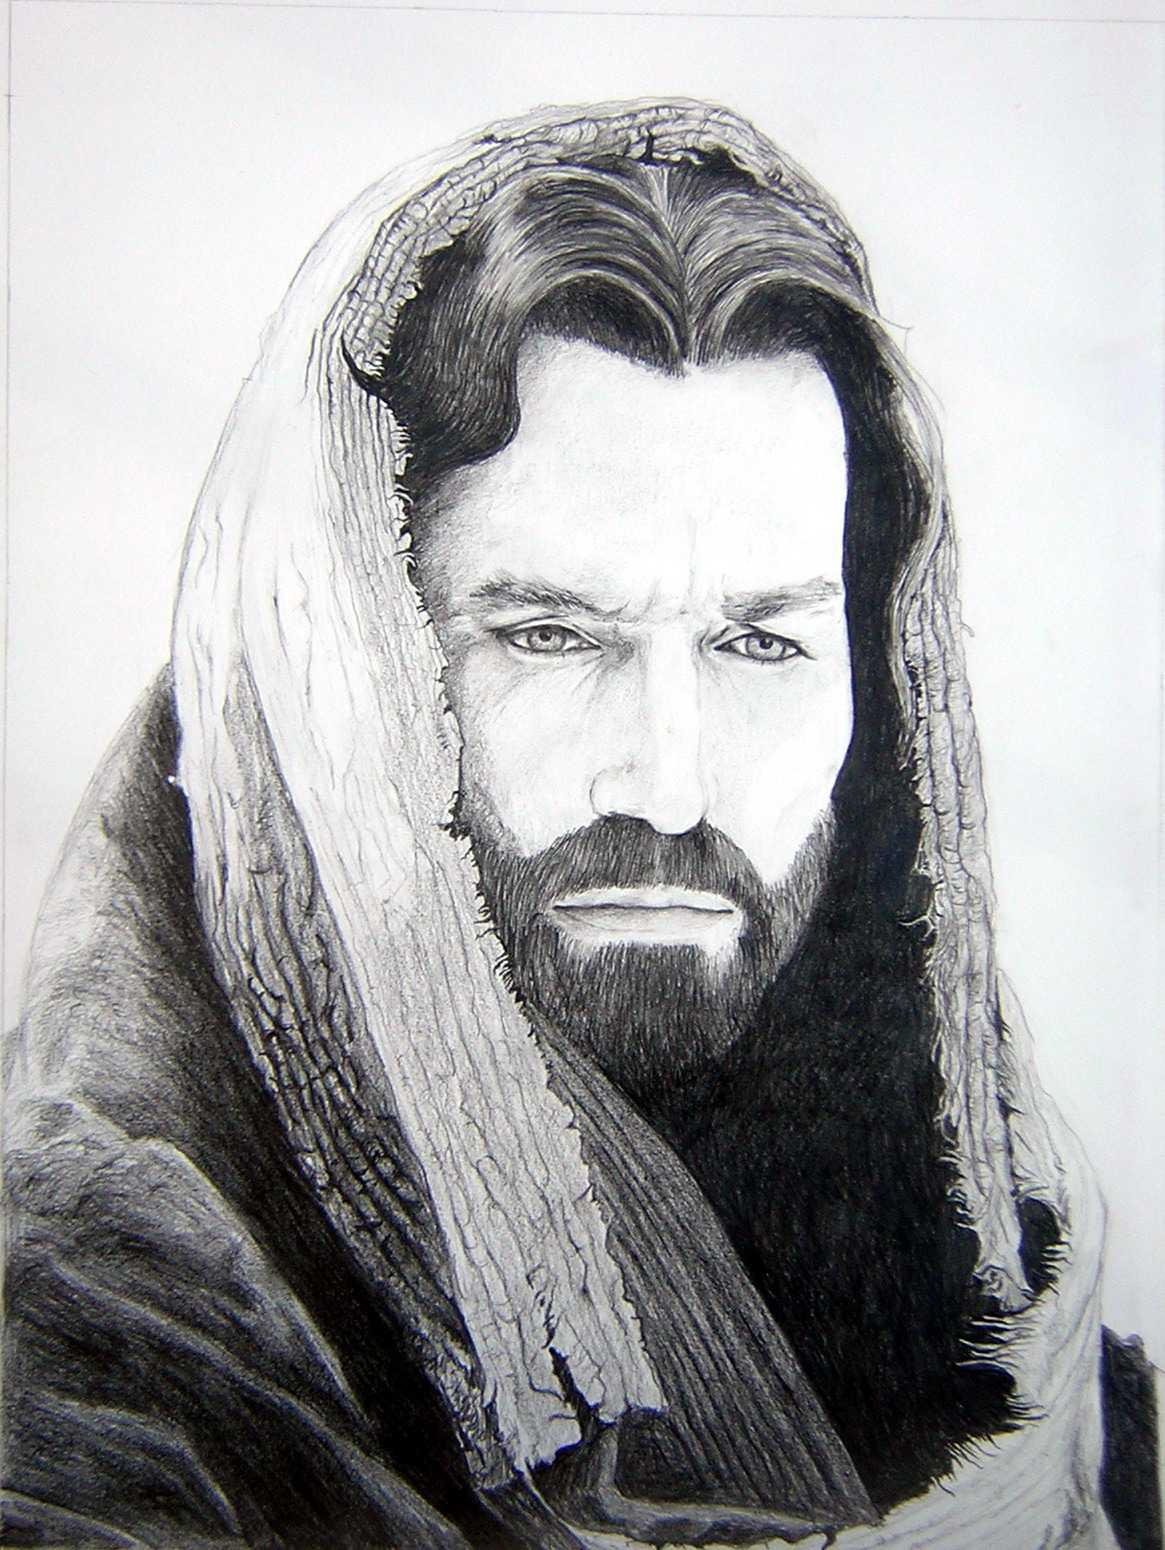 jim casy as a jesus christ figure essay Jim casy has often been seen as a symbol in the novel of jesus christ, as even the initials of his name would suggest like jesus, casy preaches a doctrine of love and, like jesus, he dies a.